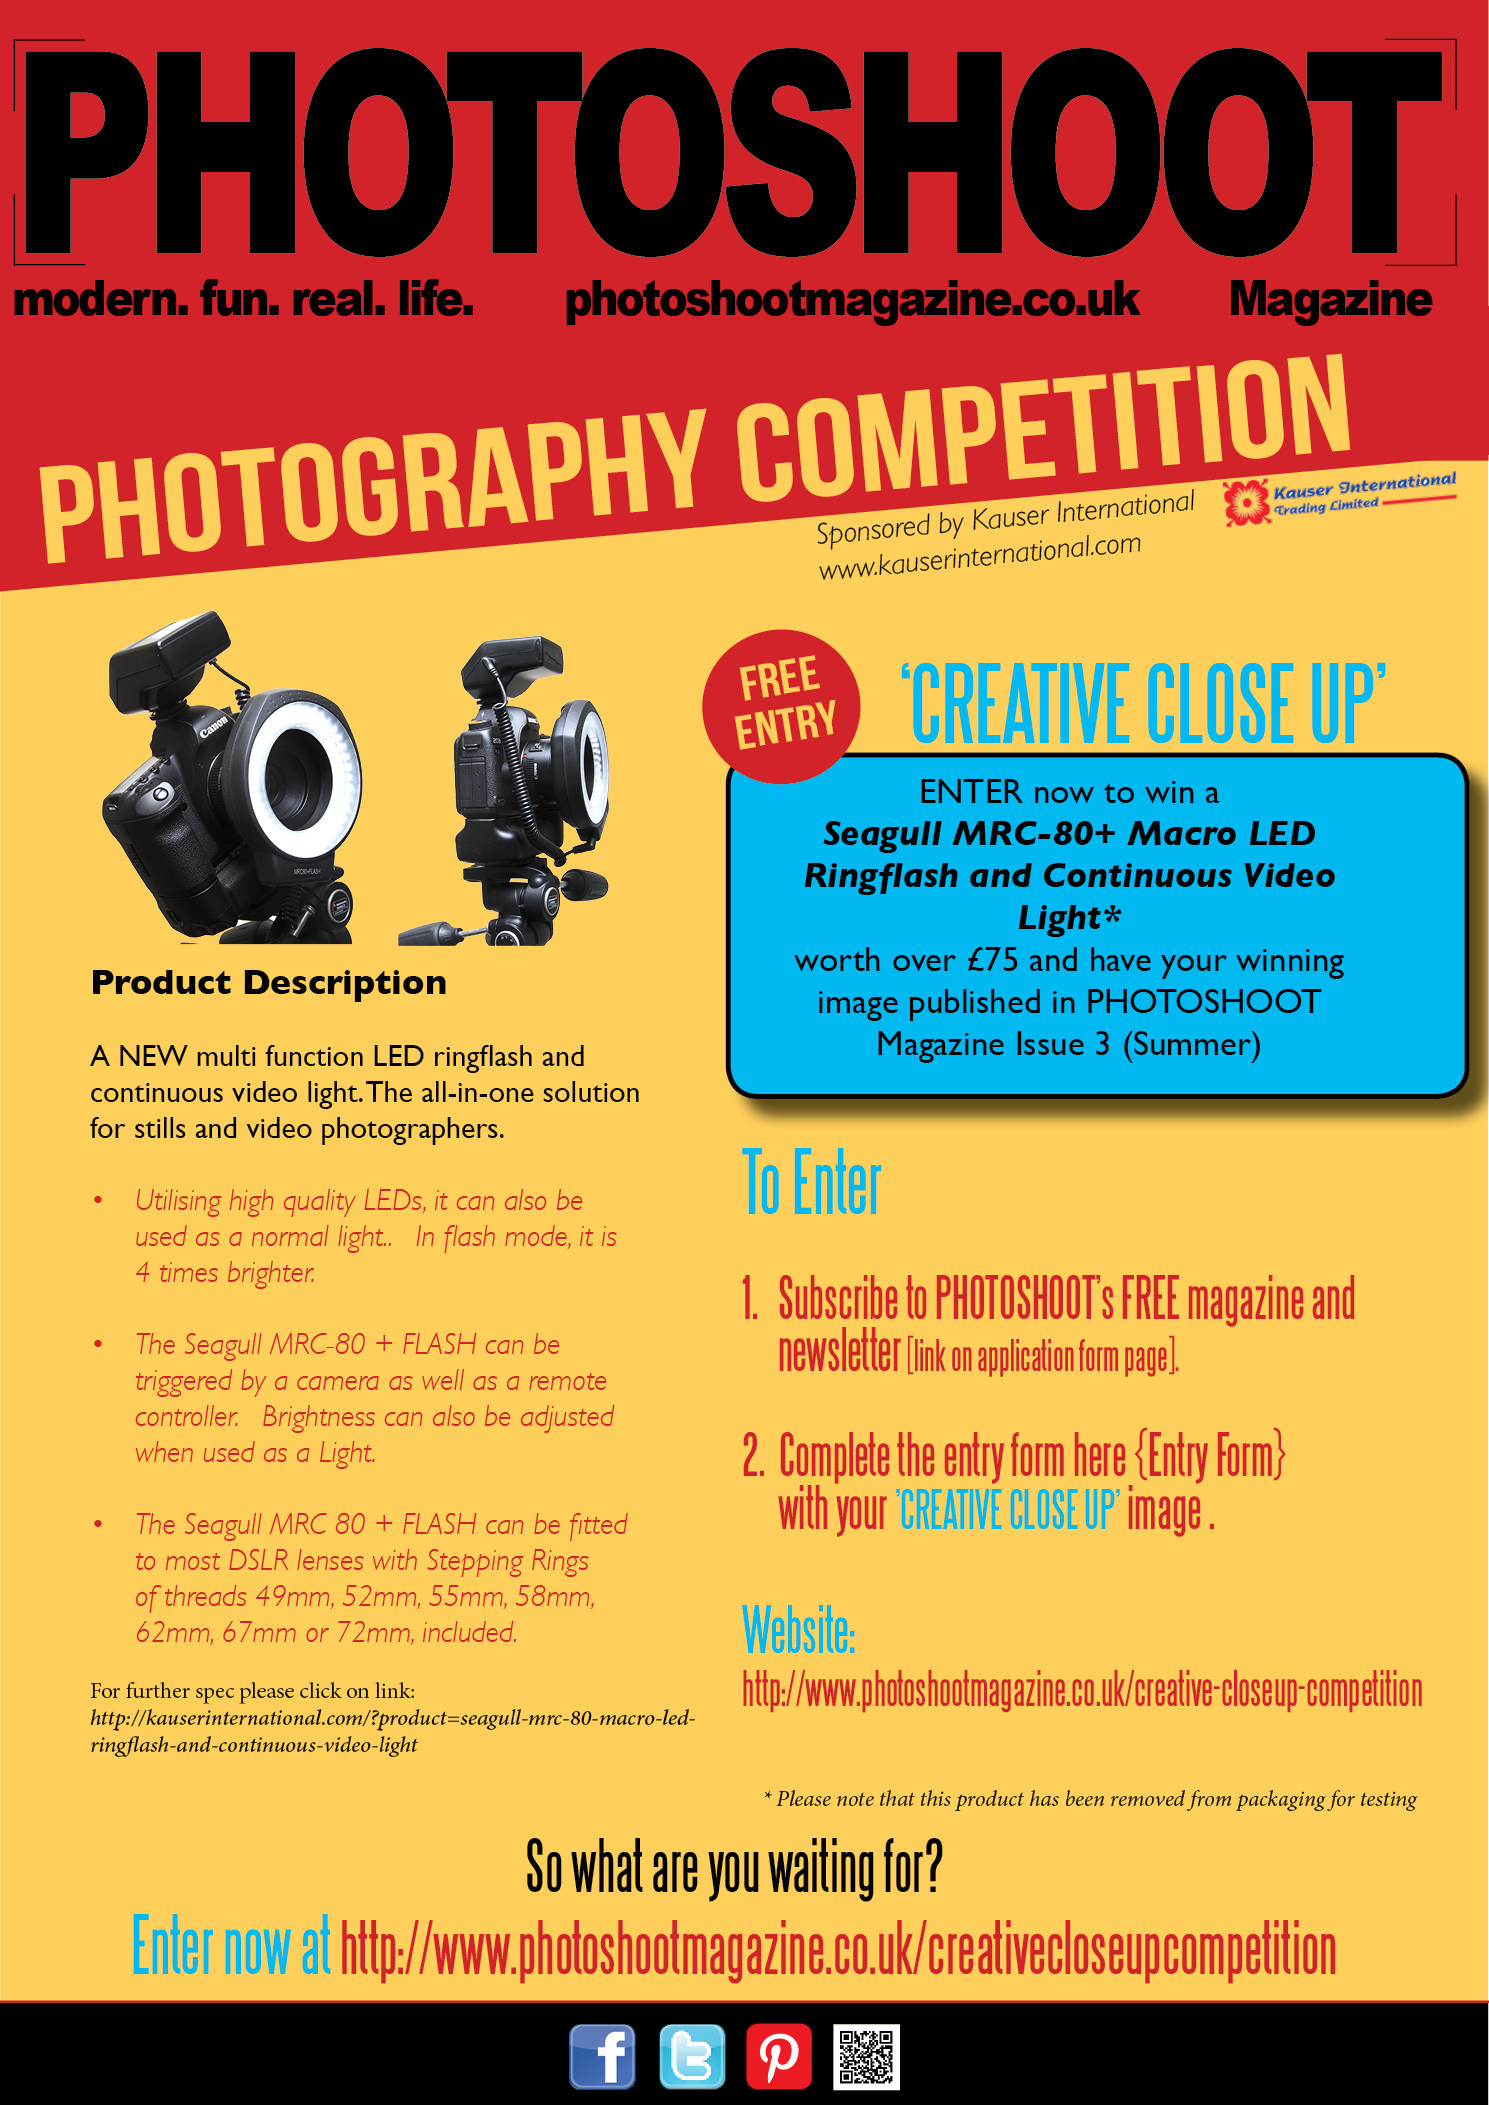 PHOTOGRAPHER COMPETITION